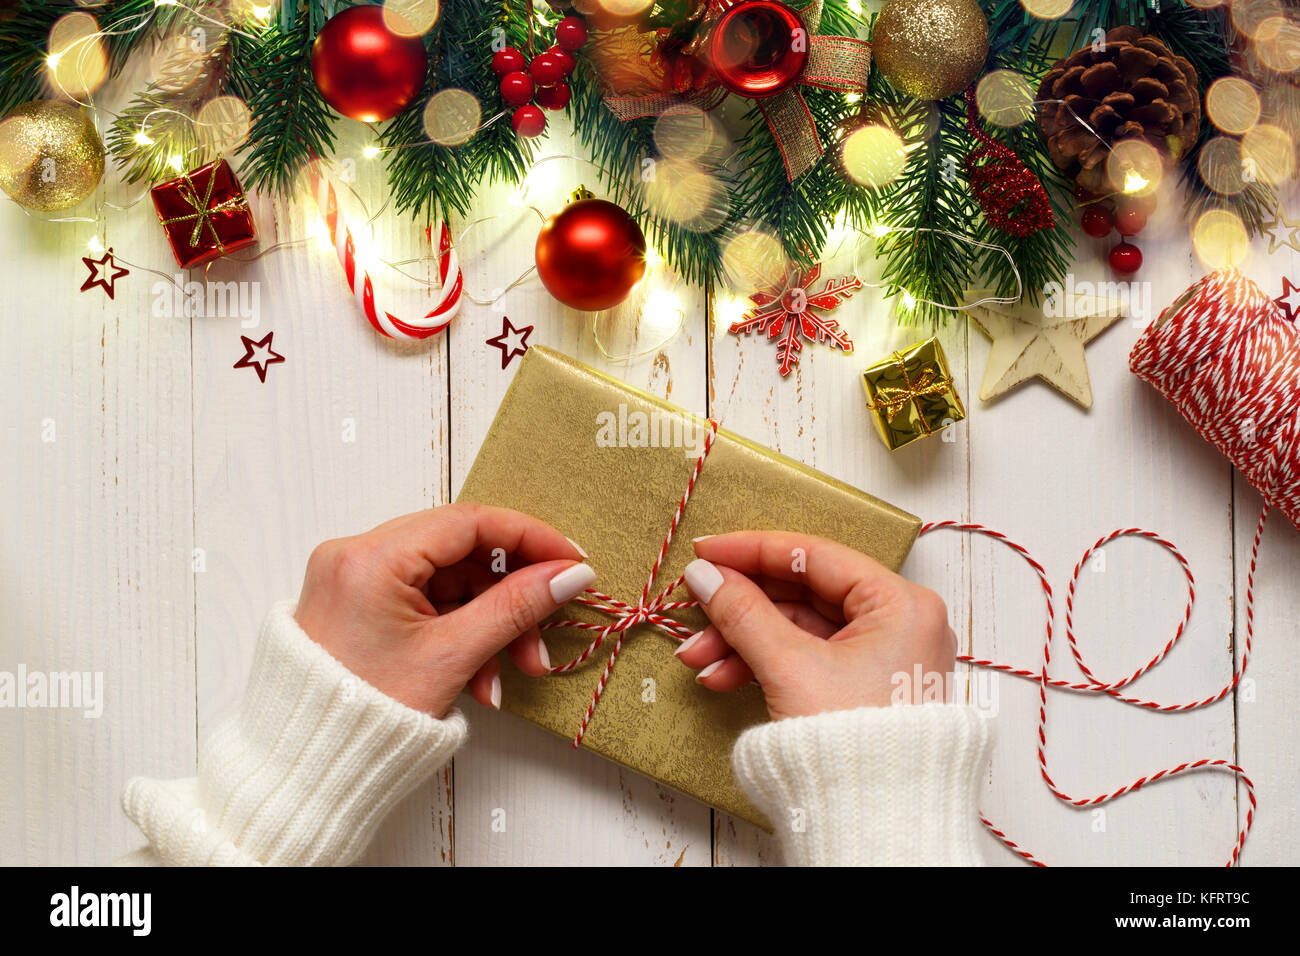 woman's hands tying up christmas gift box on white wooden table with festive ornaments and lights Stock Photo